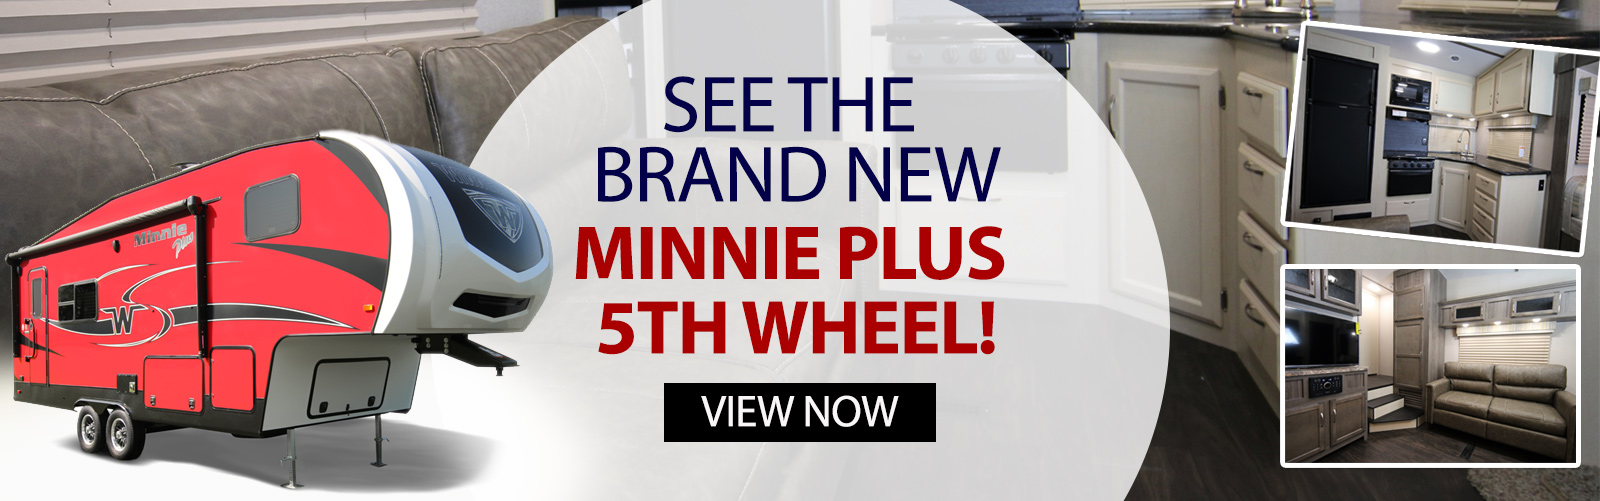 Winnebago Minnie Plus Fifth Wheel